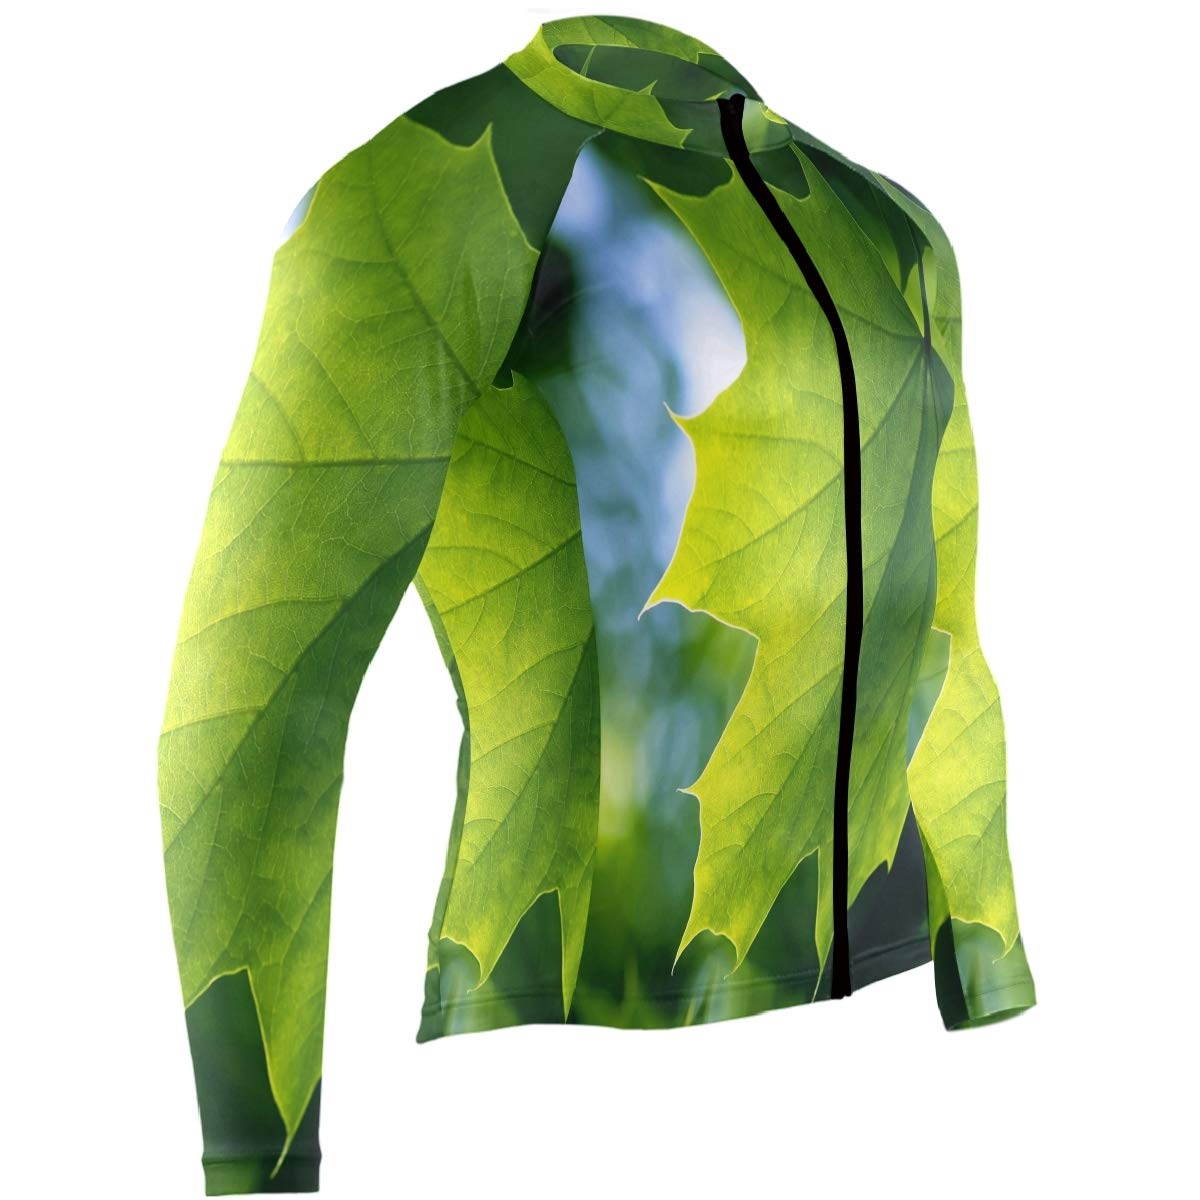 Green Maple Leaf Sunshine Mens Cycling Jersey Coat Full Sleeve Mountain Bike Apparel Outfit